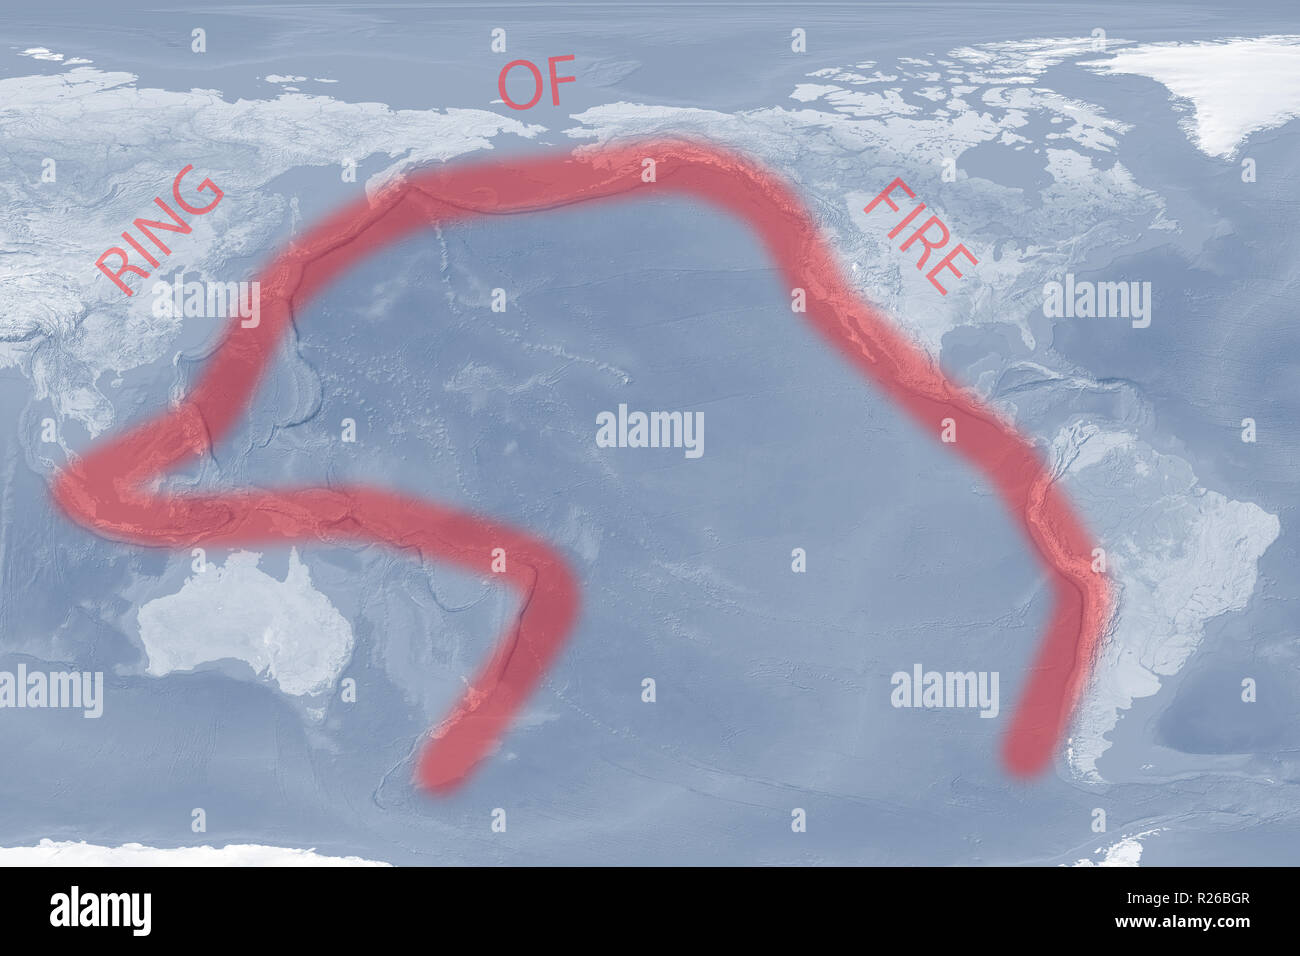 Pacific 'Ring of Fire' map (image for illustrative purposes only) - Stock Image